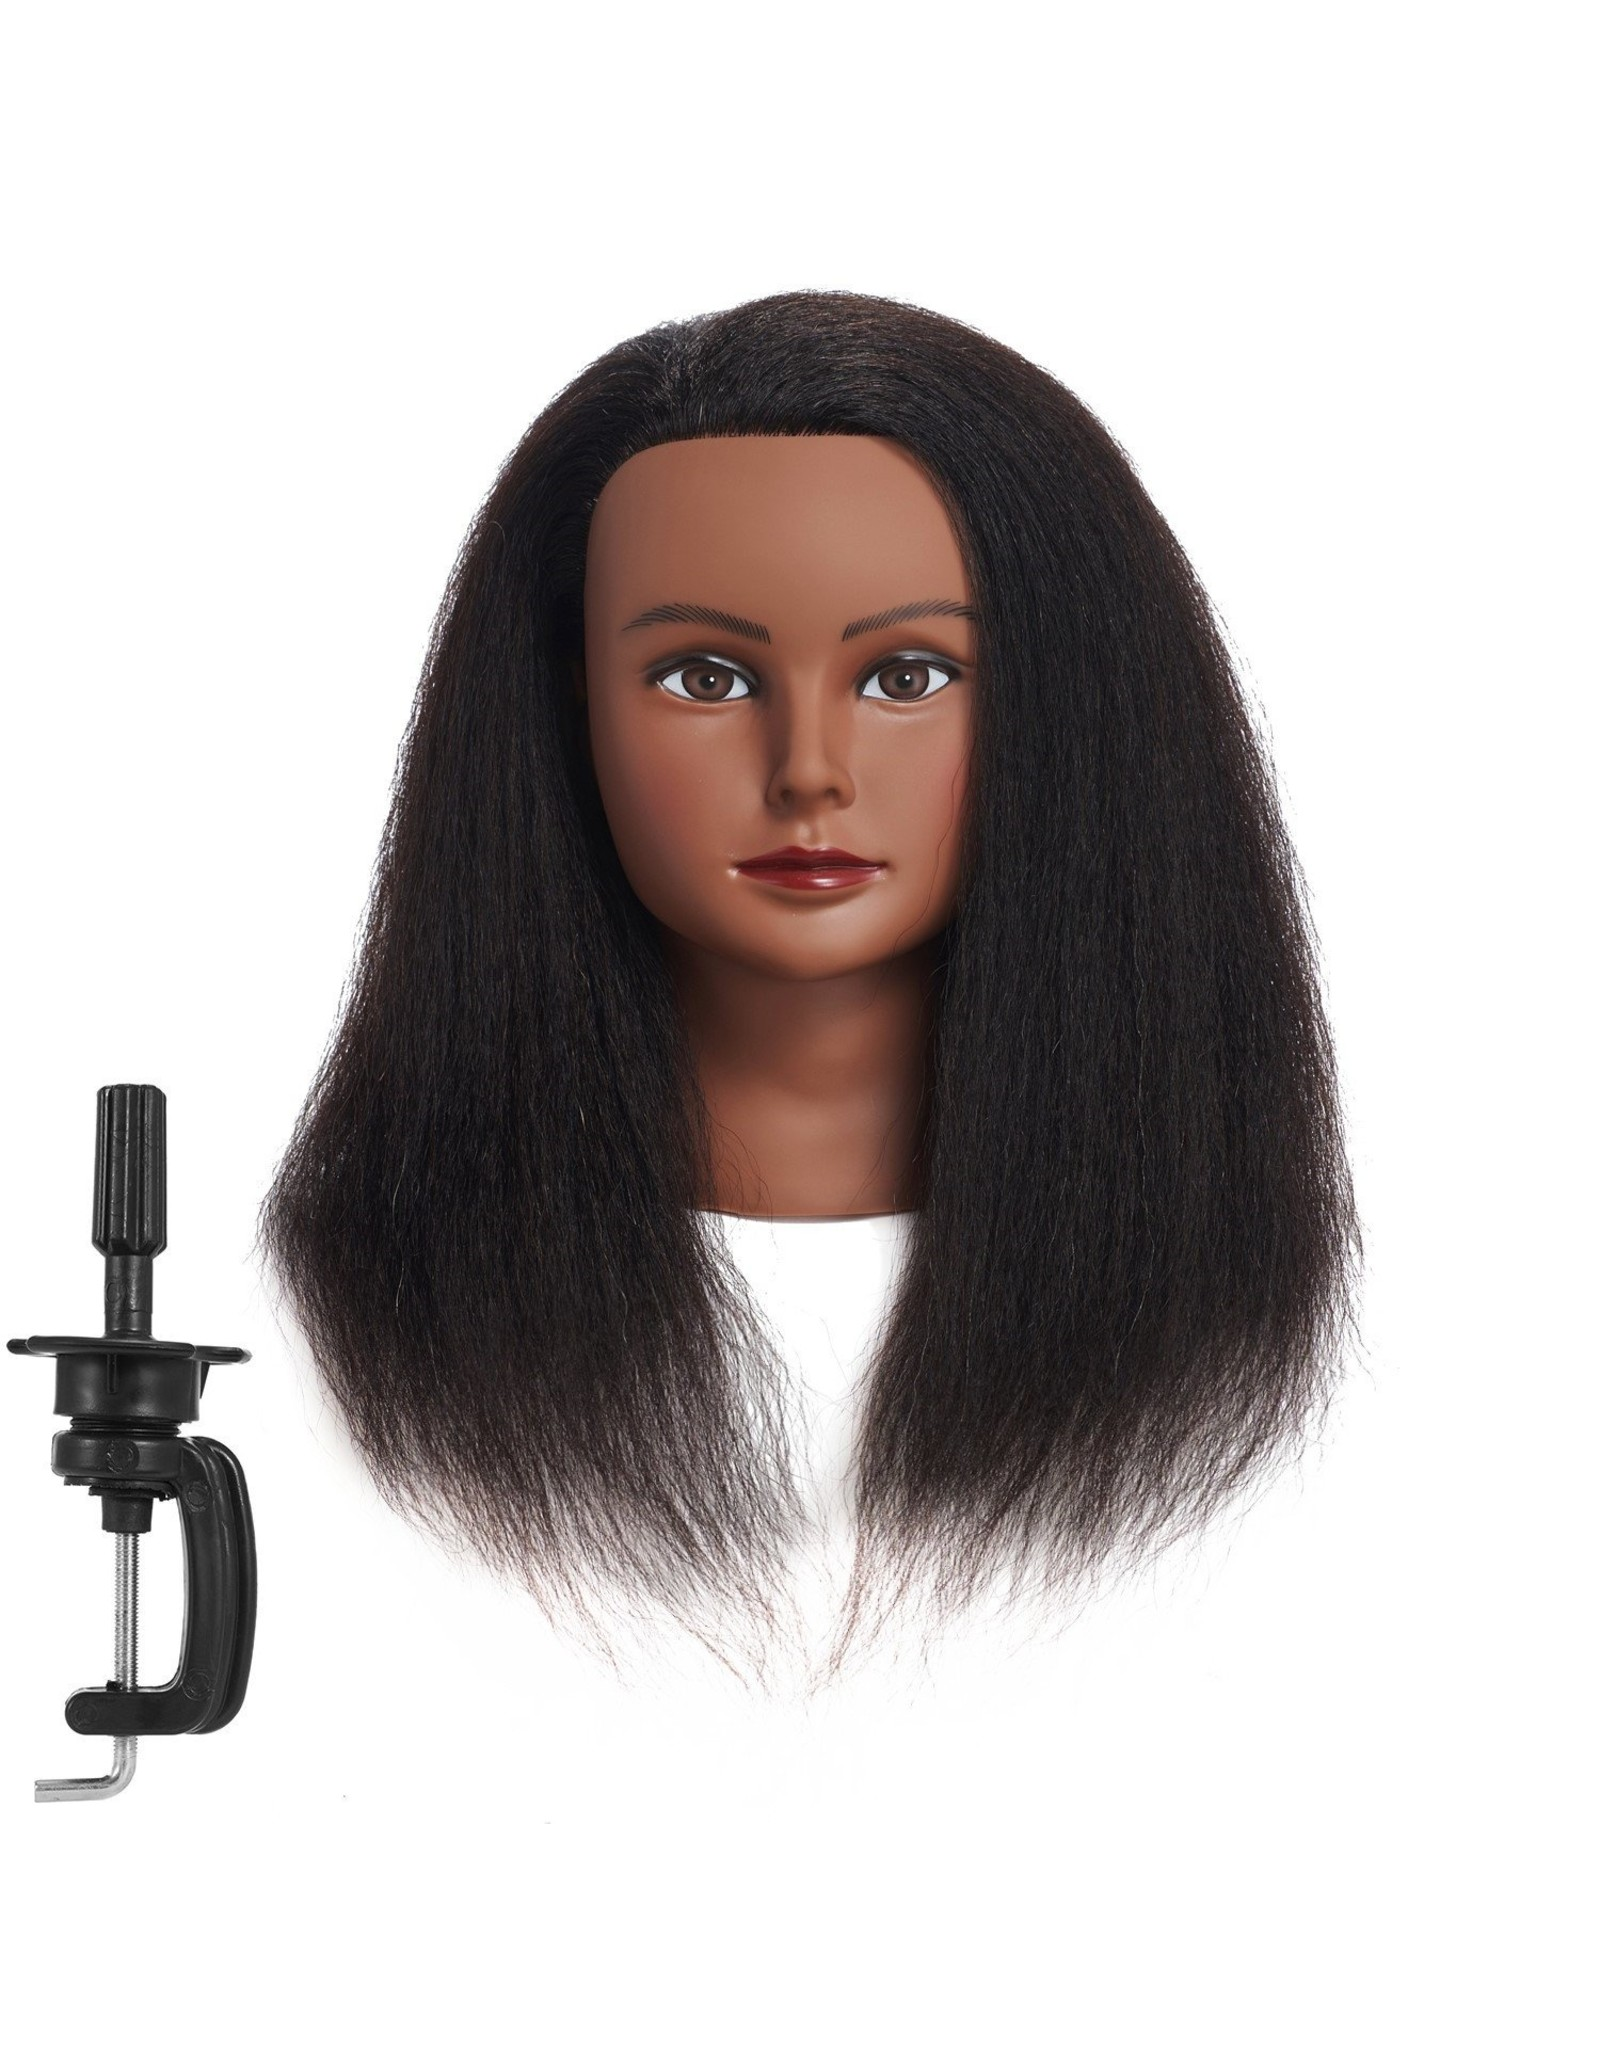 Styling Mannequin Heads